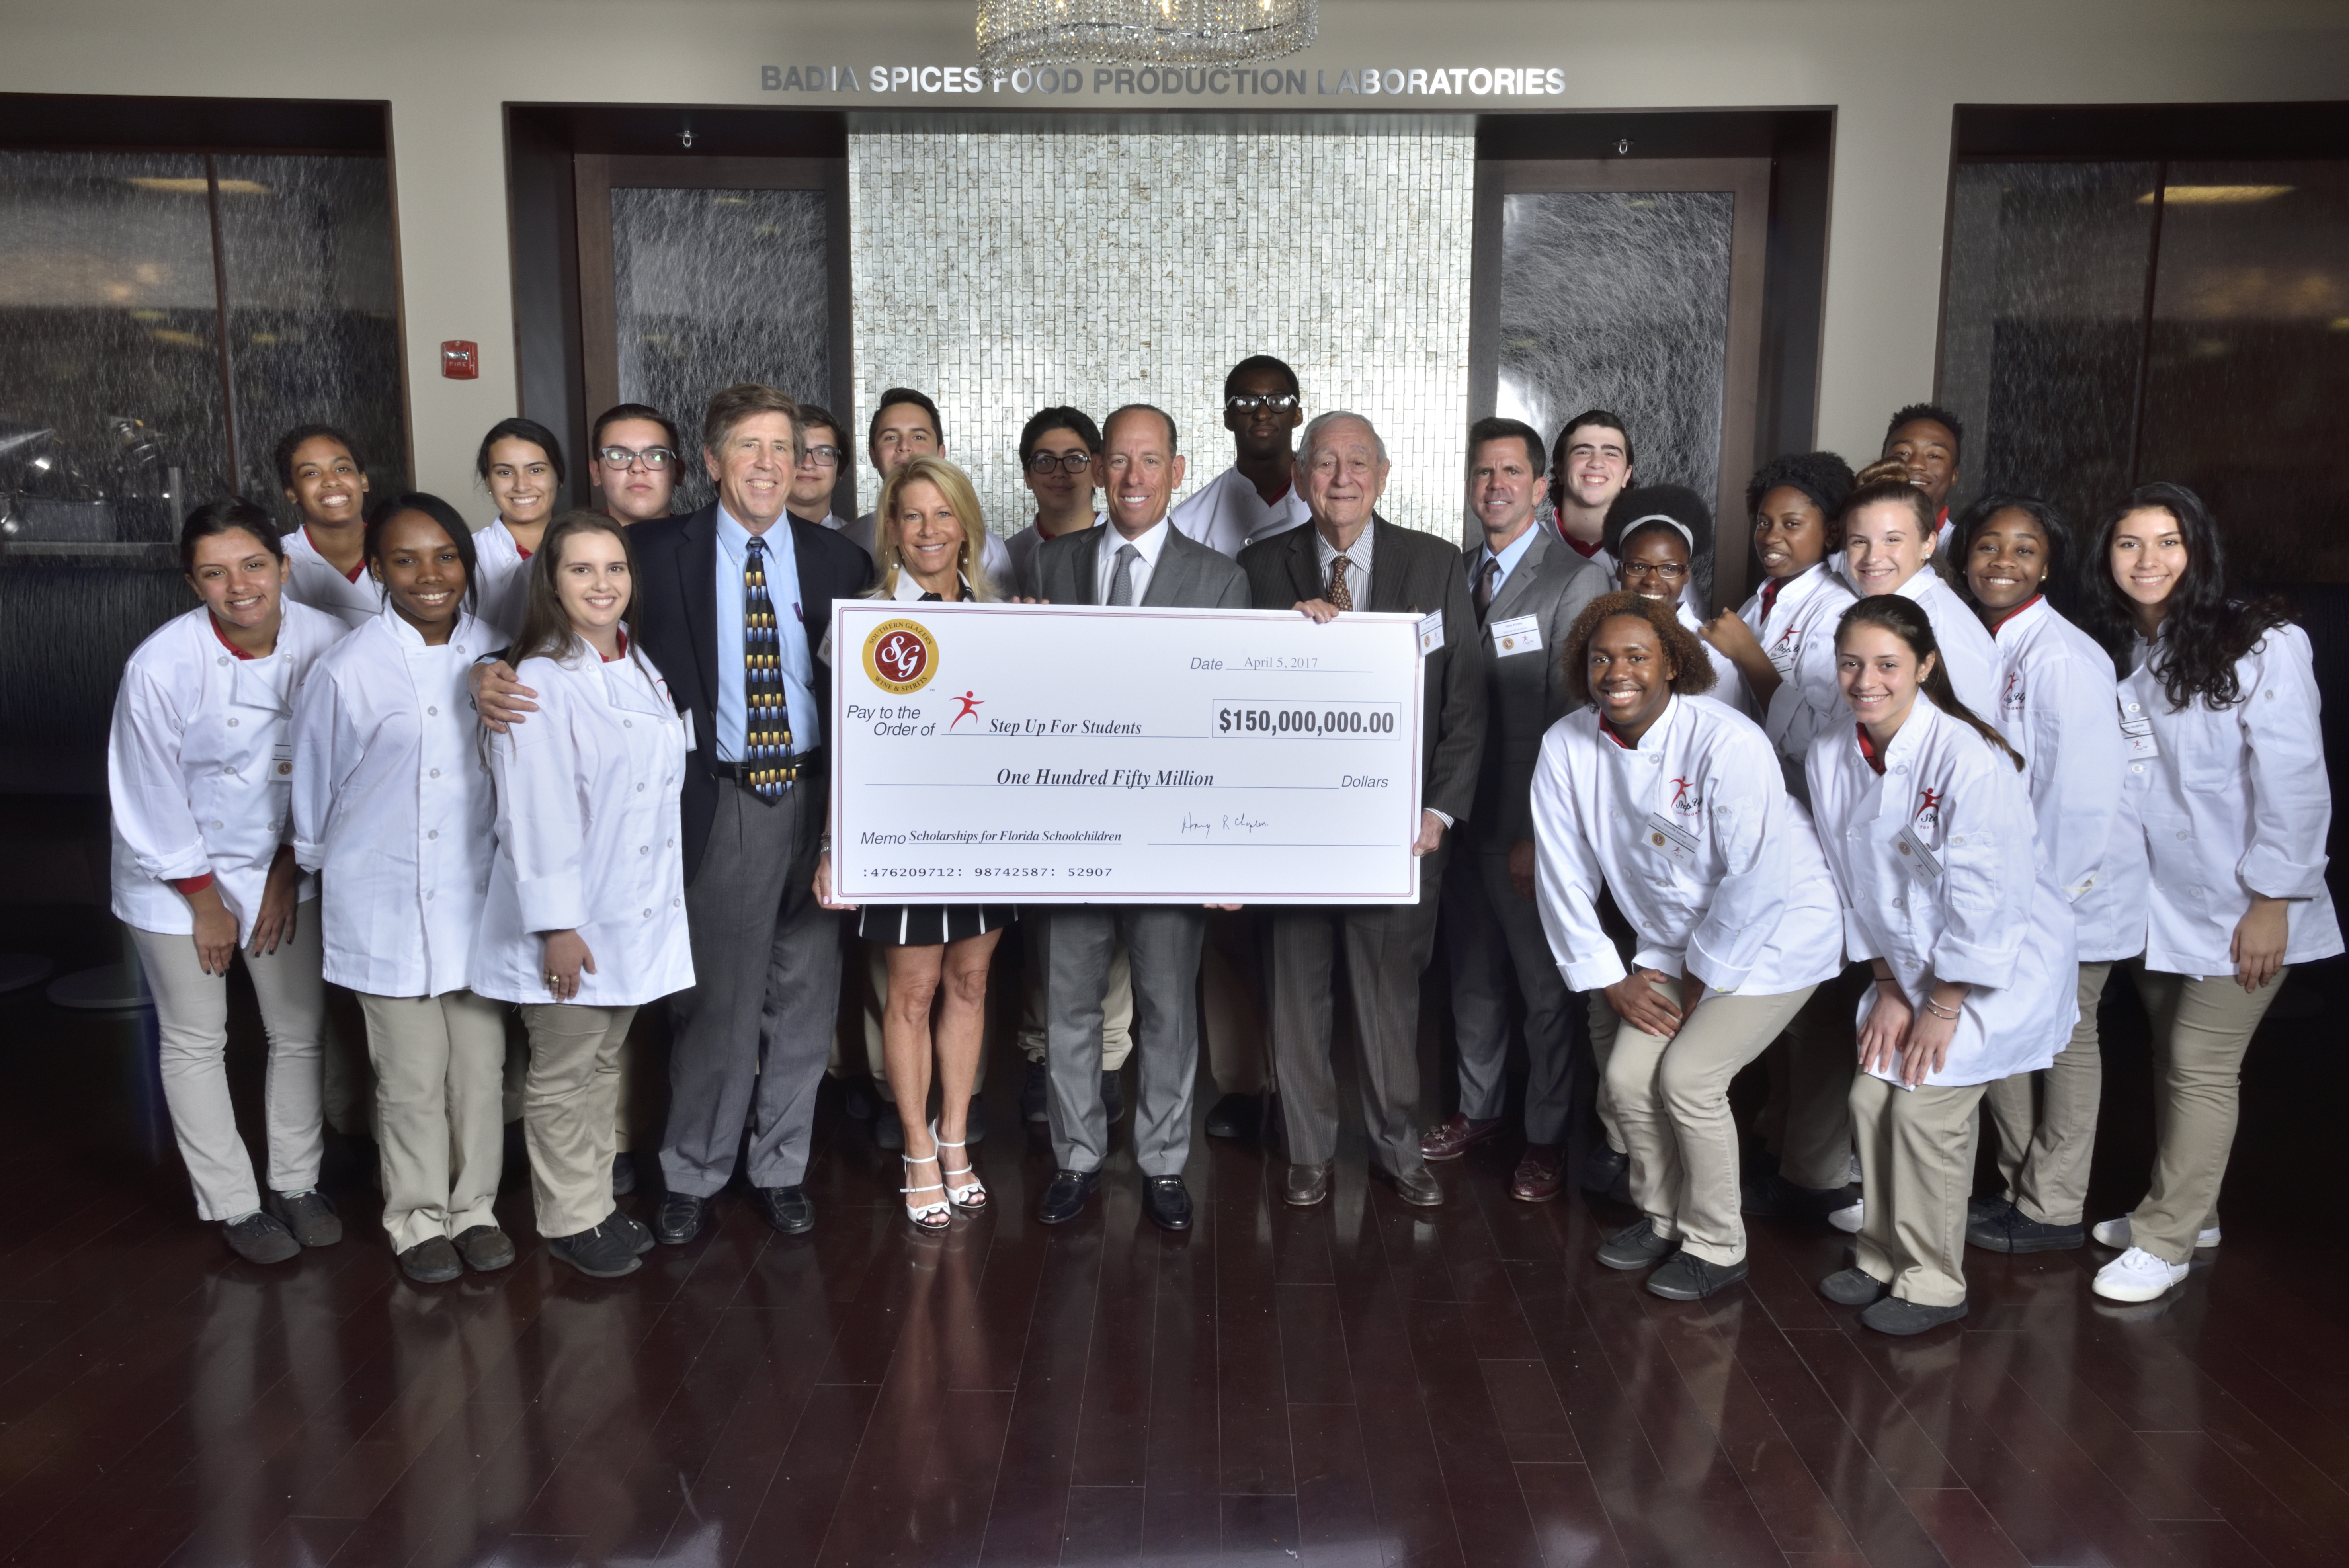 Southern Glazer's Wine & Spirits commits $150 Million to Step Up For Students Scholarship Program for the 2017/2018 school year (Pictured left to right, front row with Step Up For Students scholarship recipients from Monsignor Edward Pace High School) Dough Tuthill, President, Step Up For Students; Terry Jove, Director Charitable Giving, Southern Glazer's; Wayne Chaplin, CEO, Southern Glazer's, Harvey Chaplin, Chairman, Southern Glazer's; and John Kirtley, Founder and Board Chairman, Step Up For Students (Photo: Business Wire)